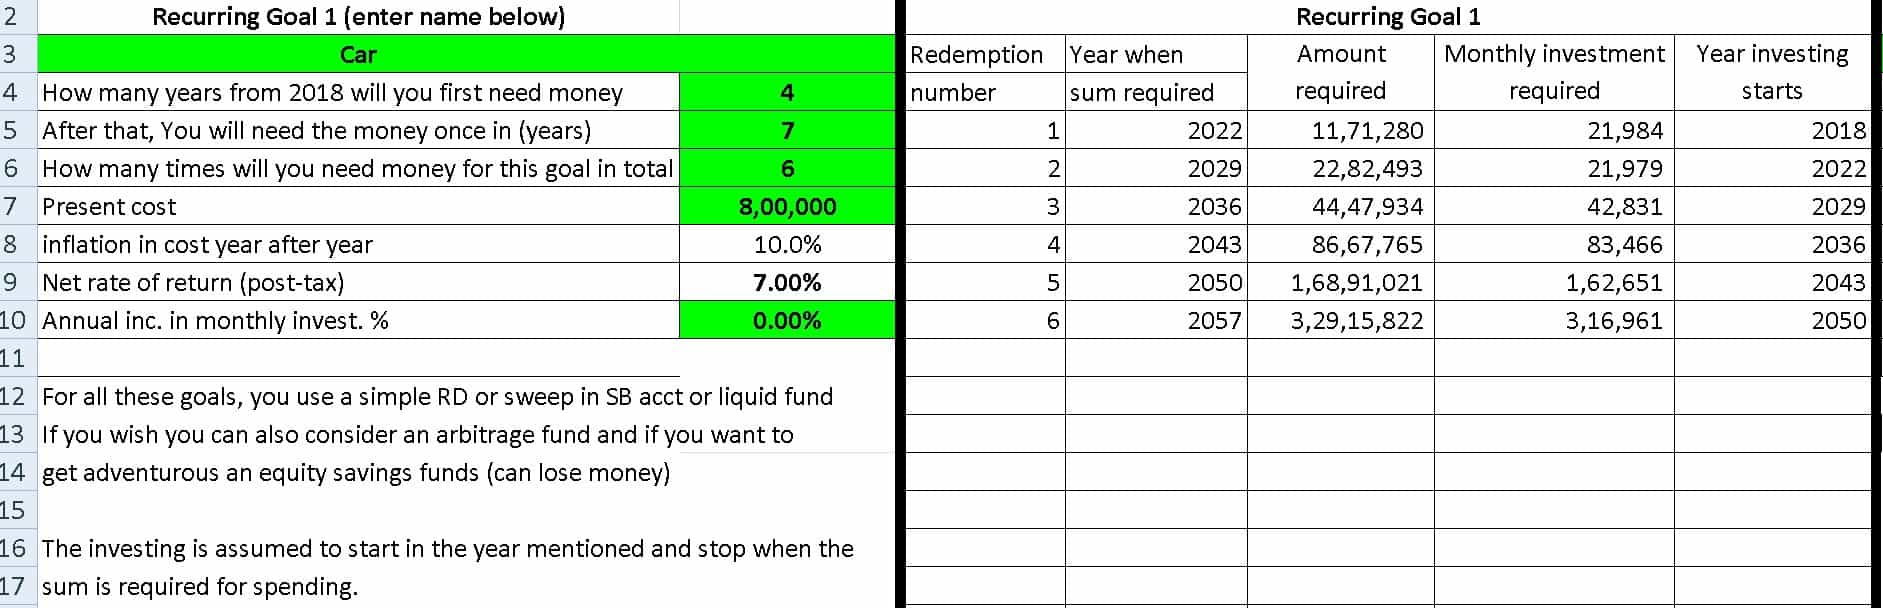 investment planning example 4